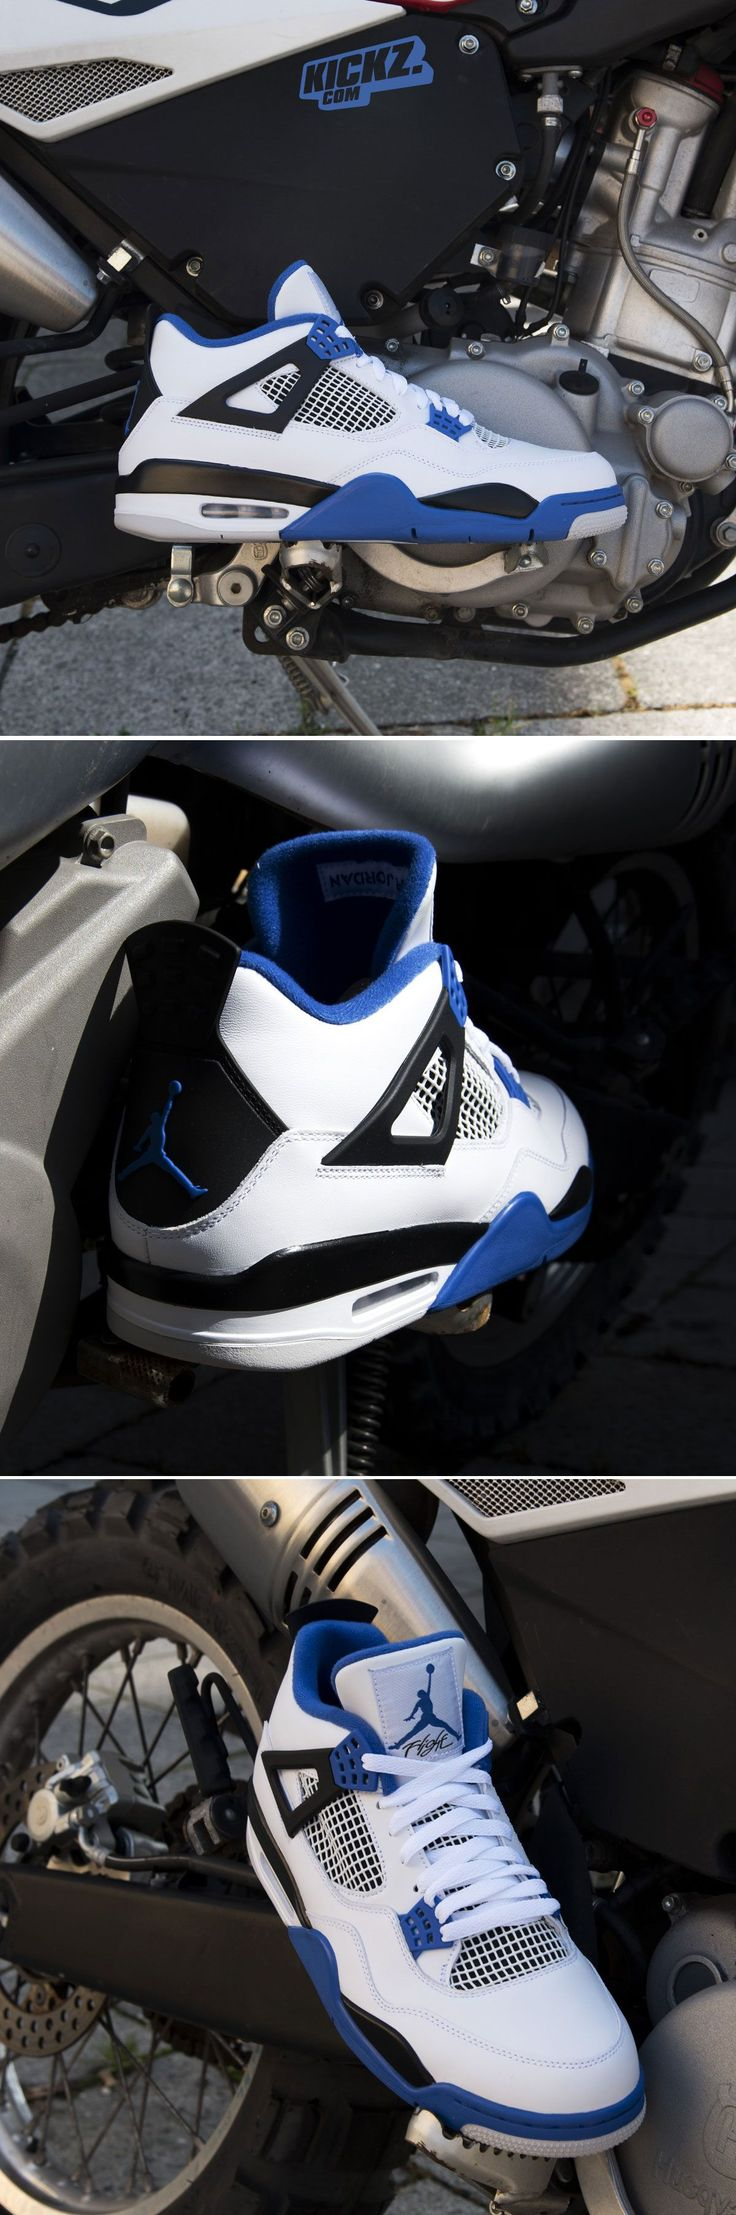 Air Jordan 4 Retro Motorsport (white game royal). What a machine! #aj4 #airjordan #kickzcom